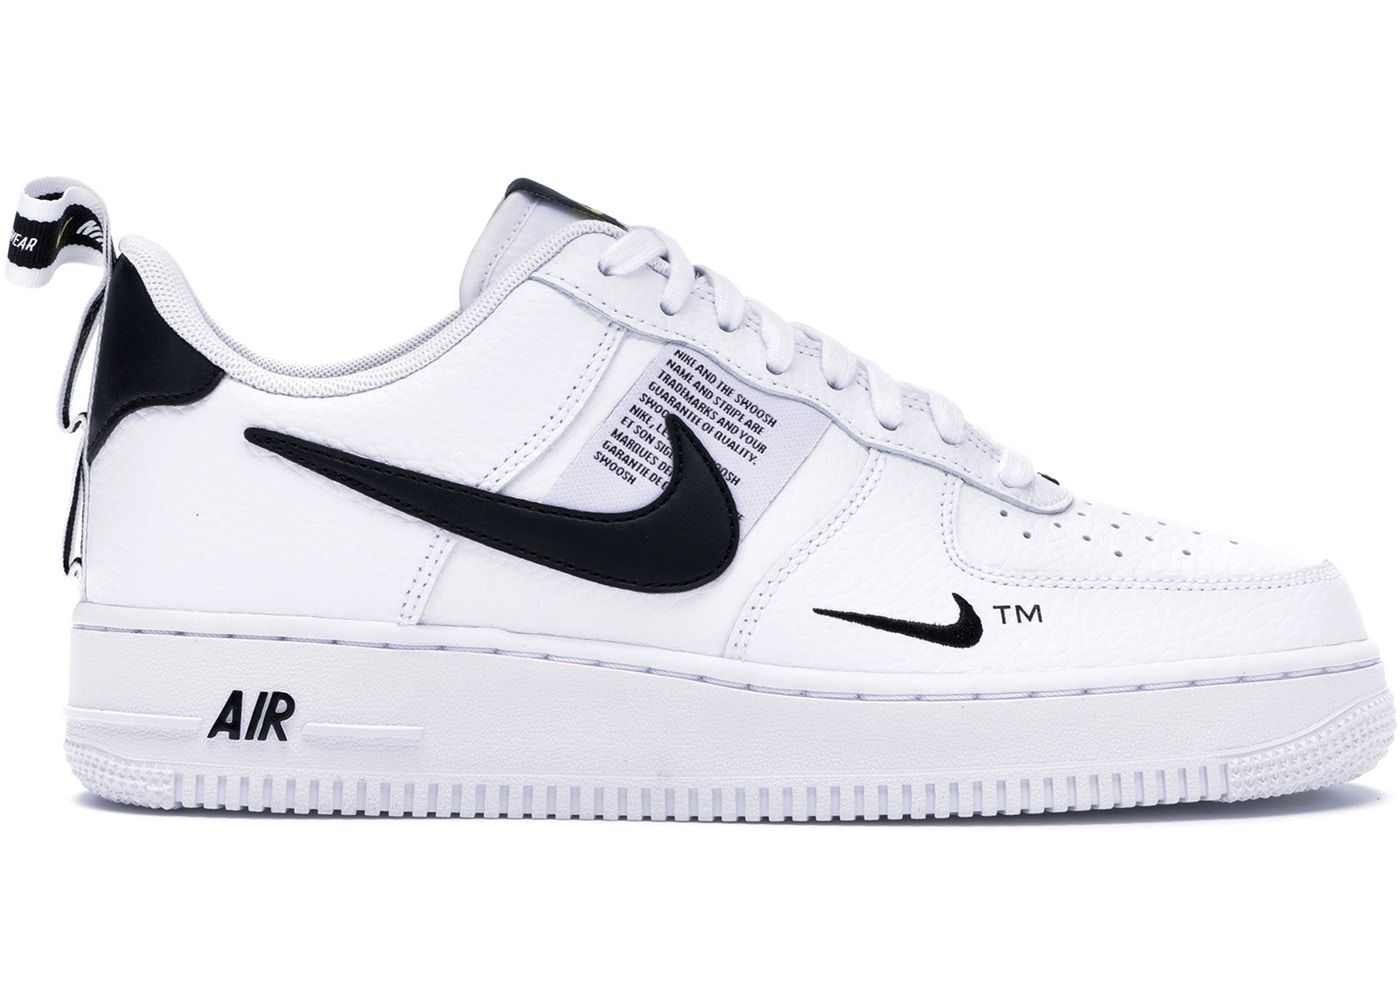 Nike Air Force 1 Low Utility White Black In 2020 White Nike Shoes Nike Air Shoes Air Force Shoes